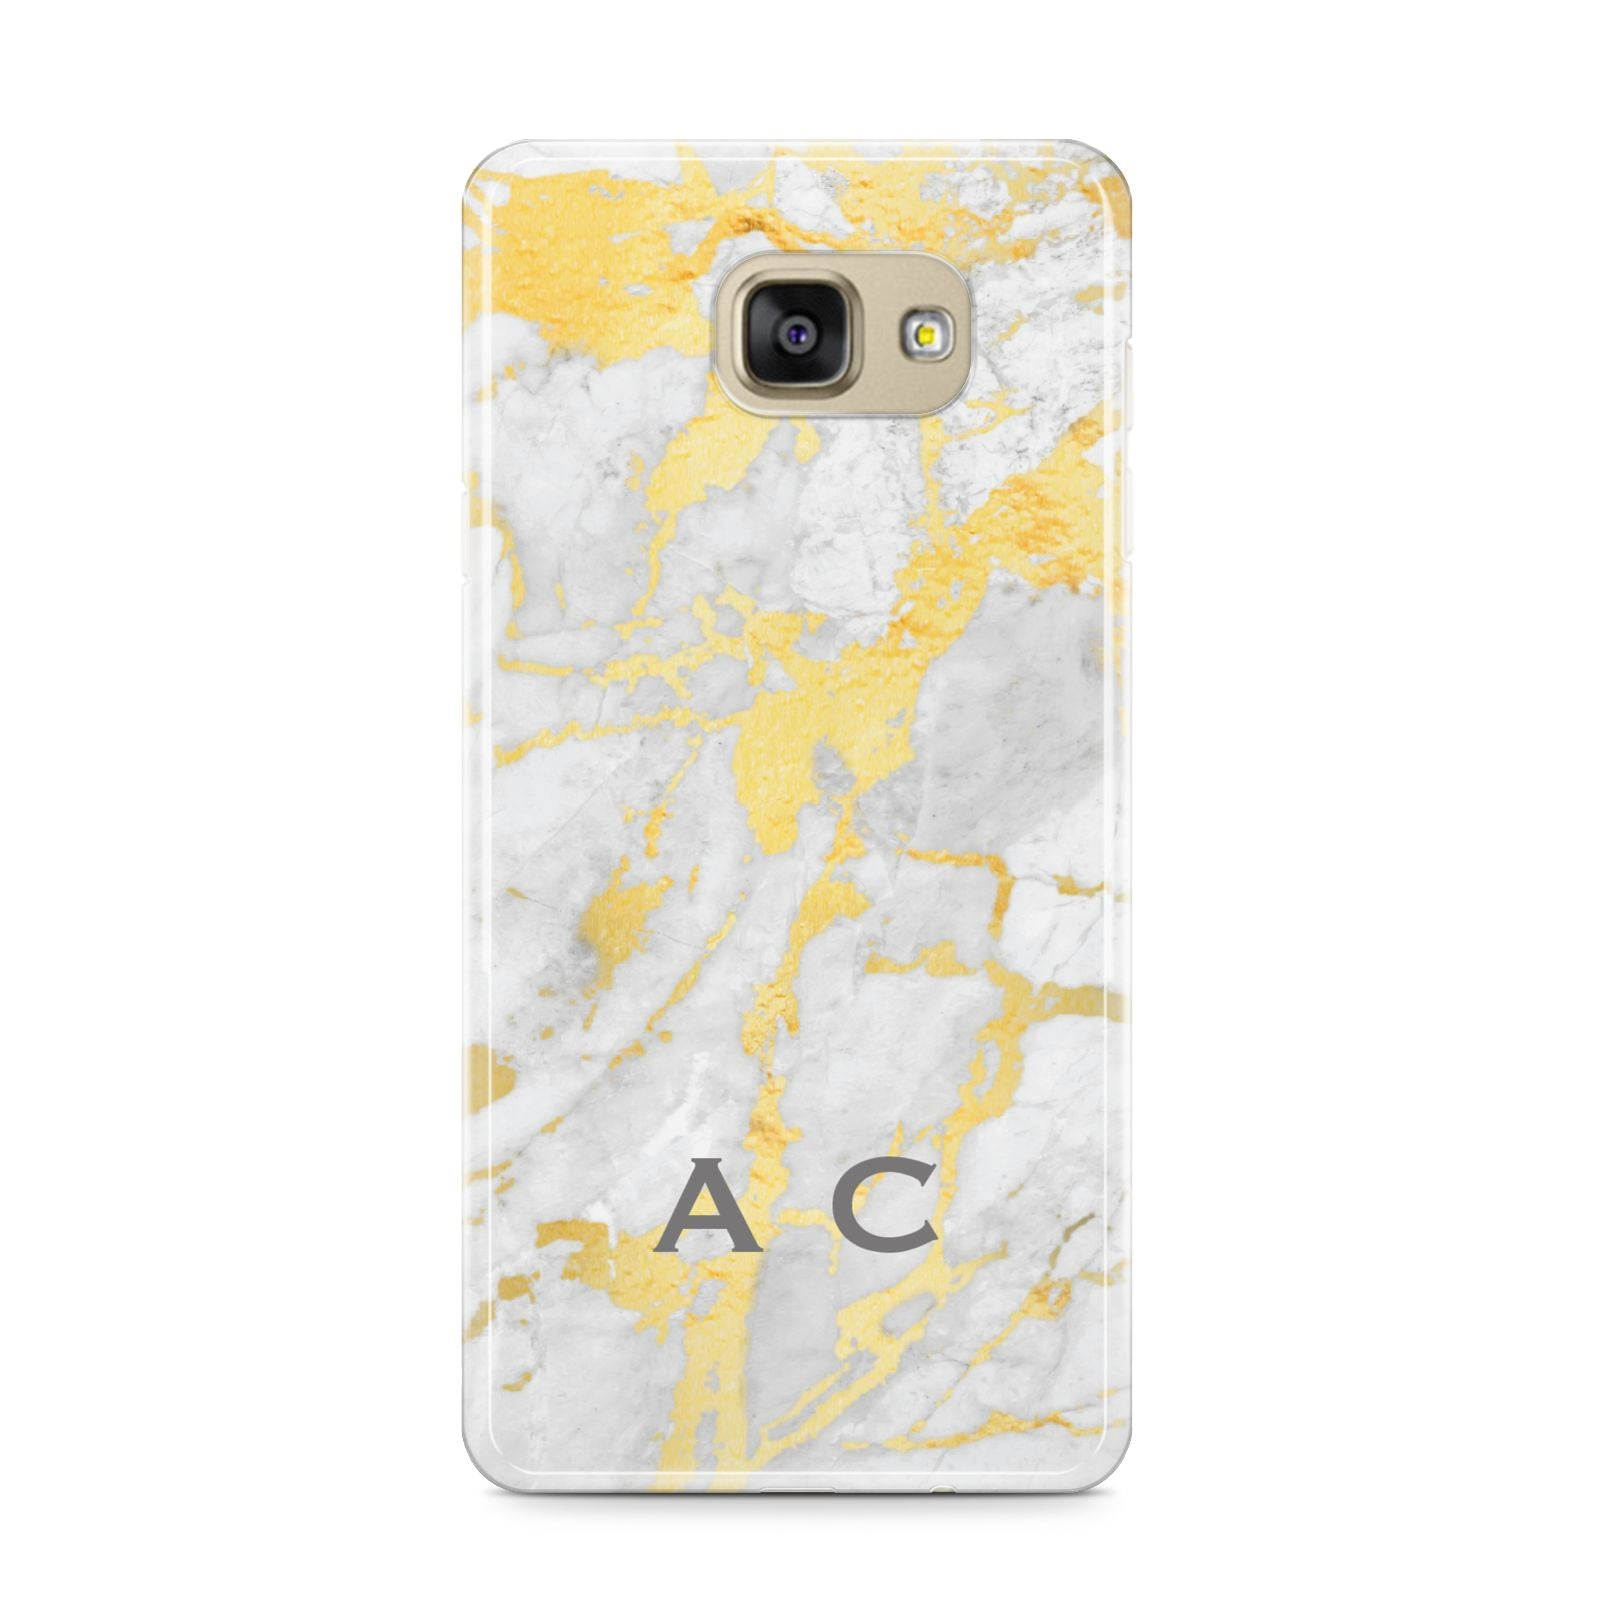 Gold Marble Initials Personalised Samsung Galaxy A9 2016 Case on gold phone